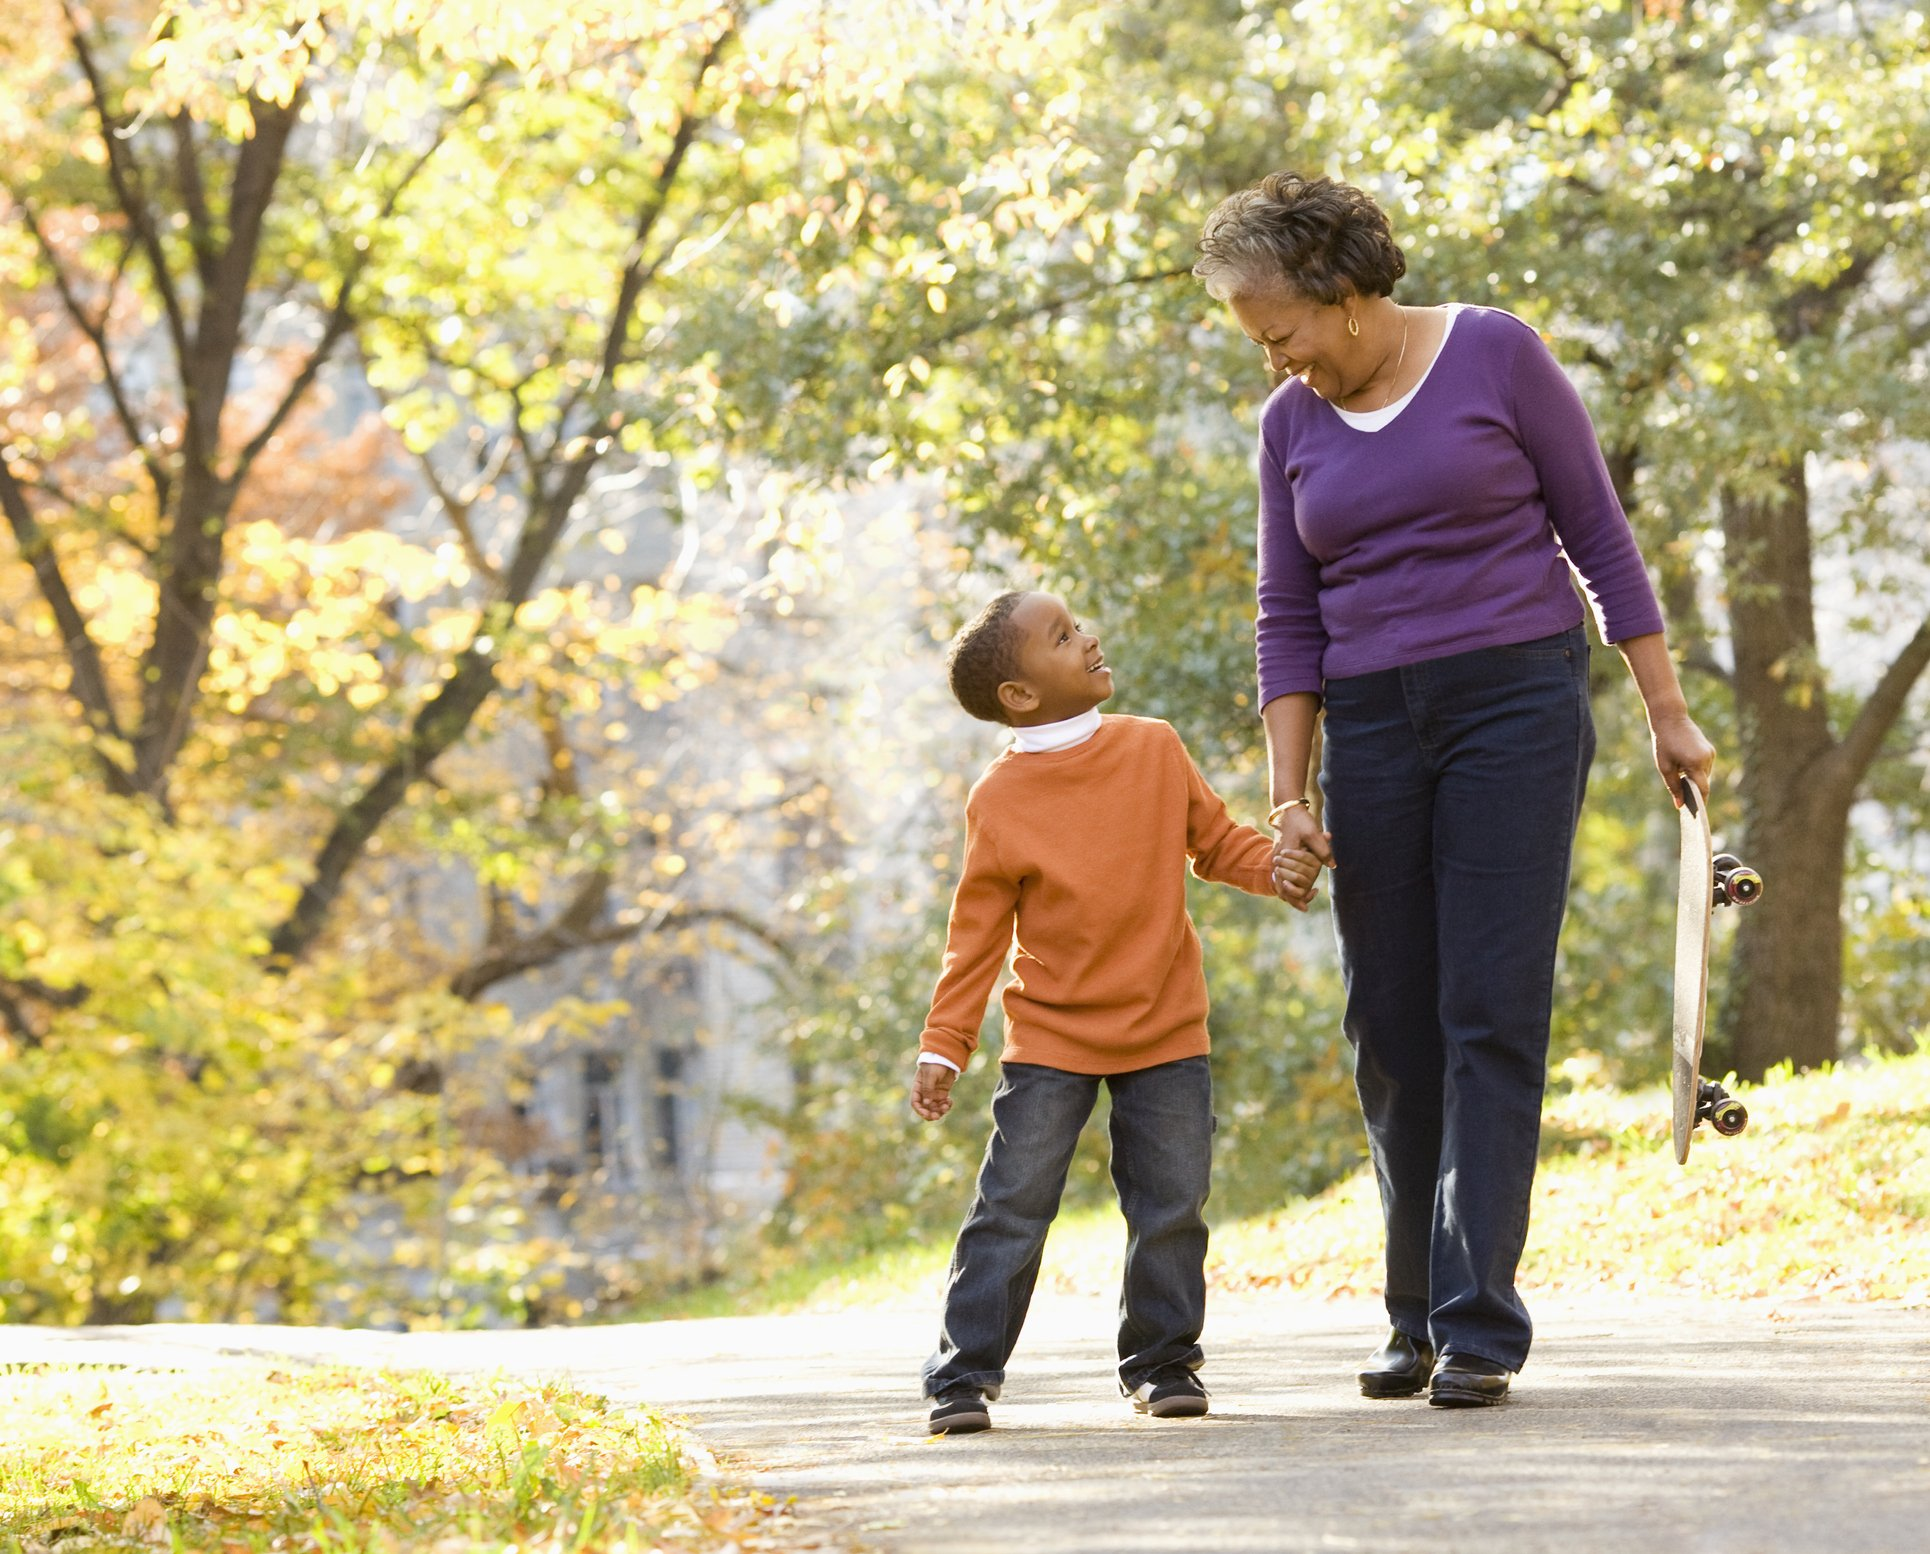 Grandmother and granson walking in park smiling | Photo: Getty Images